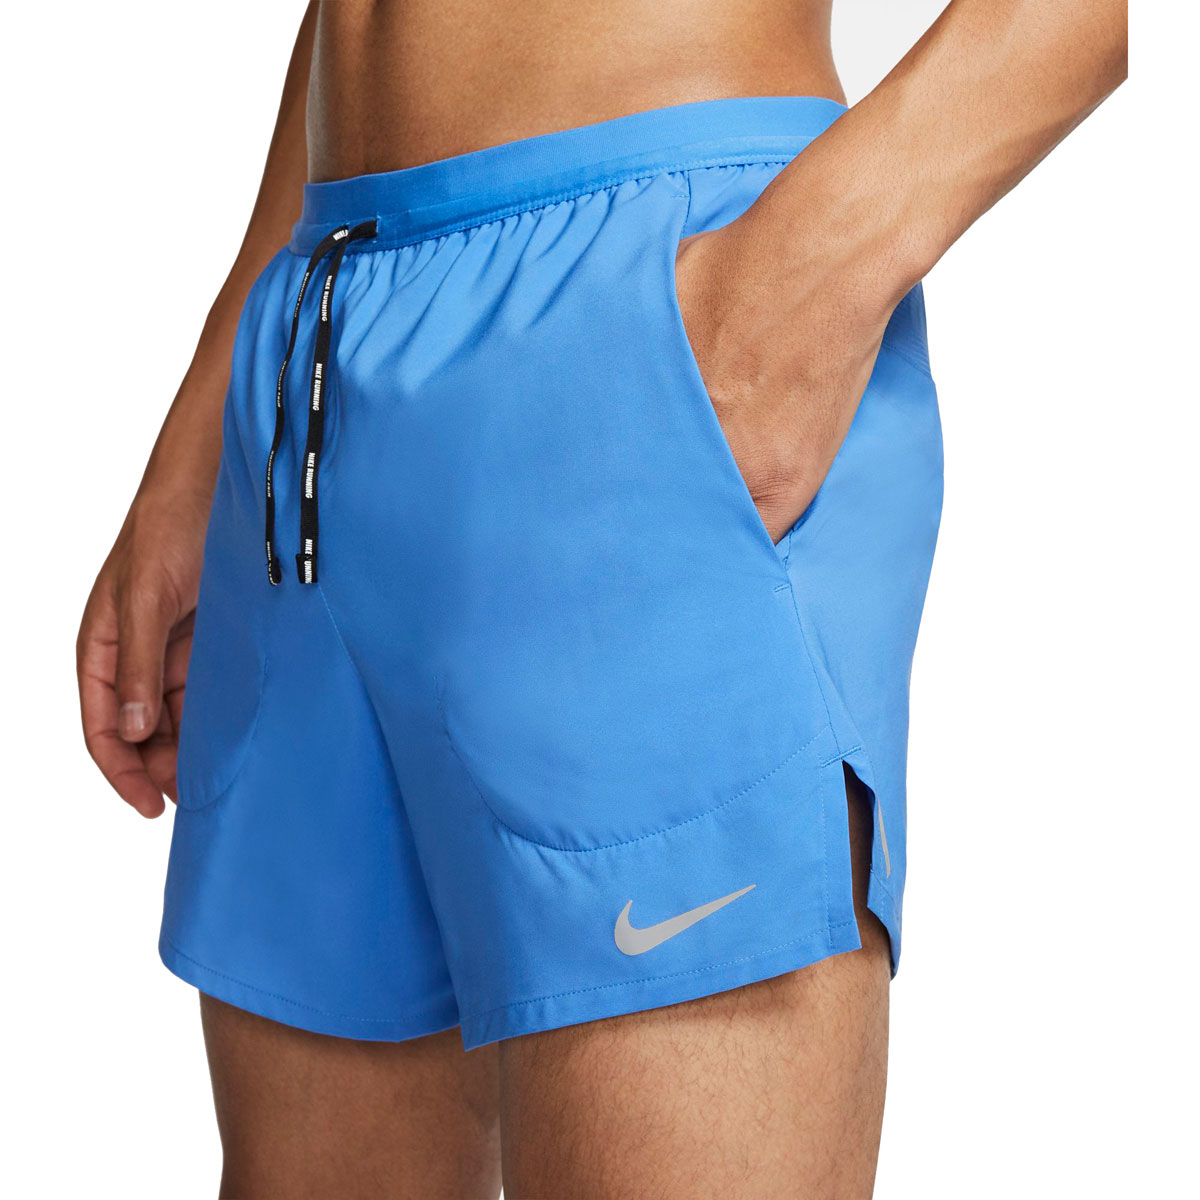 """Men's Nike Flex Stride 5"""" Brief Running Shorts - Color: Pacific Blue/Reflective Silver - Size: S, Pacific Blue/Reflective Silver, large, image 3"""